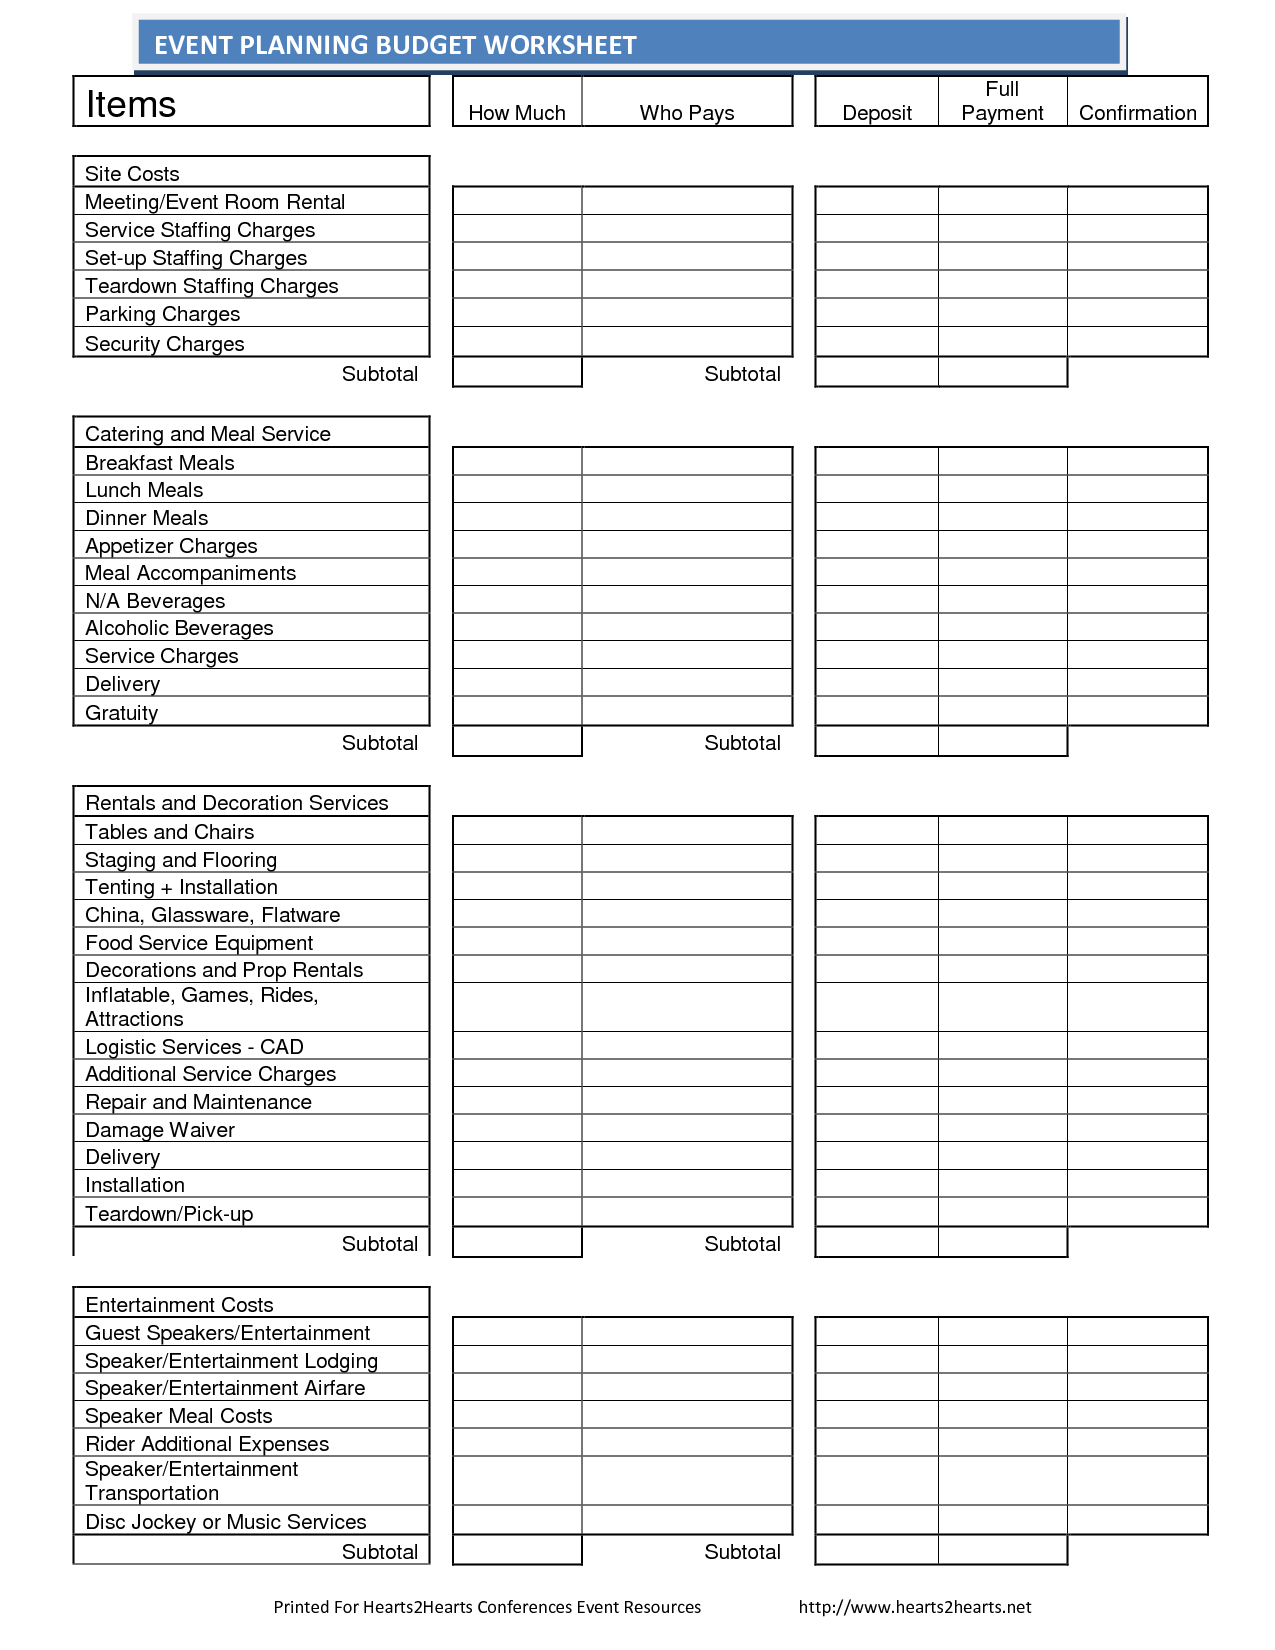 Budget Worksheet Template For Events